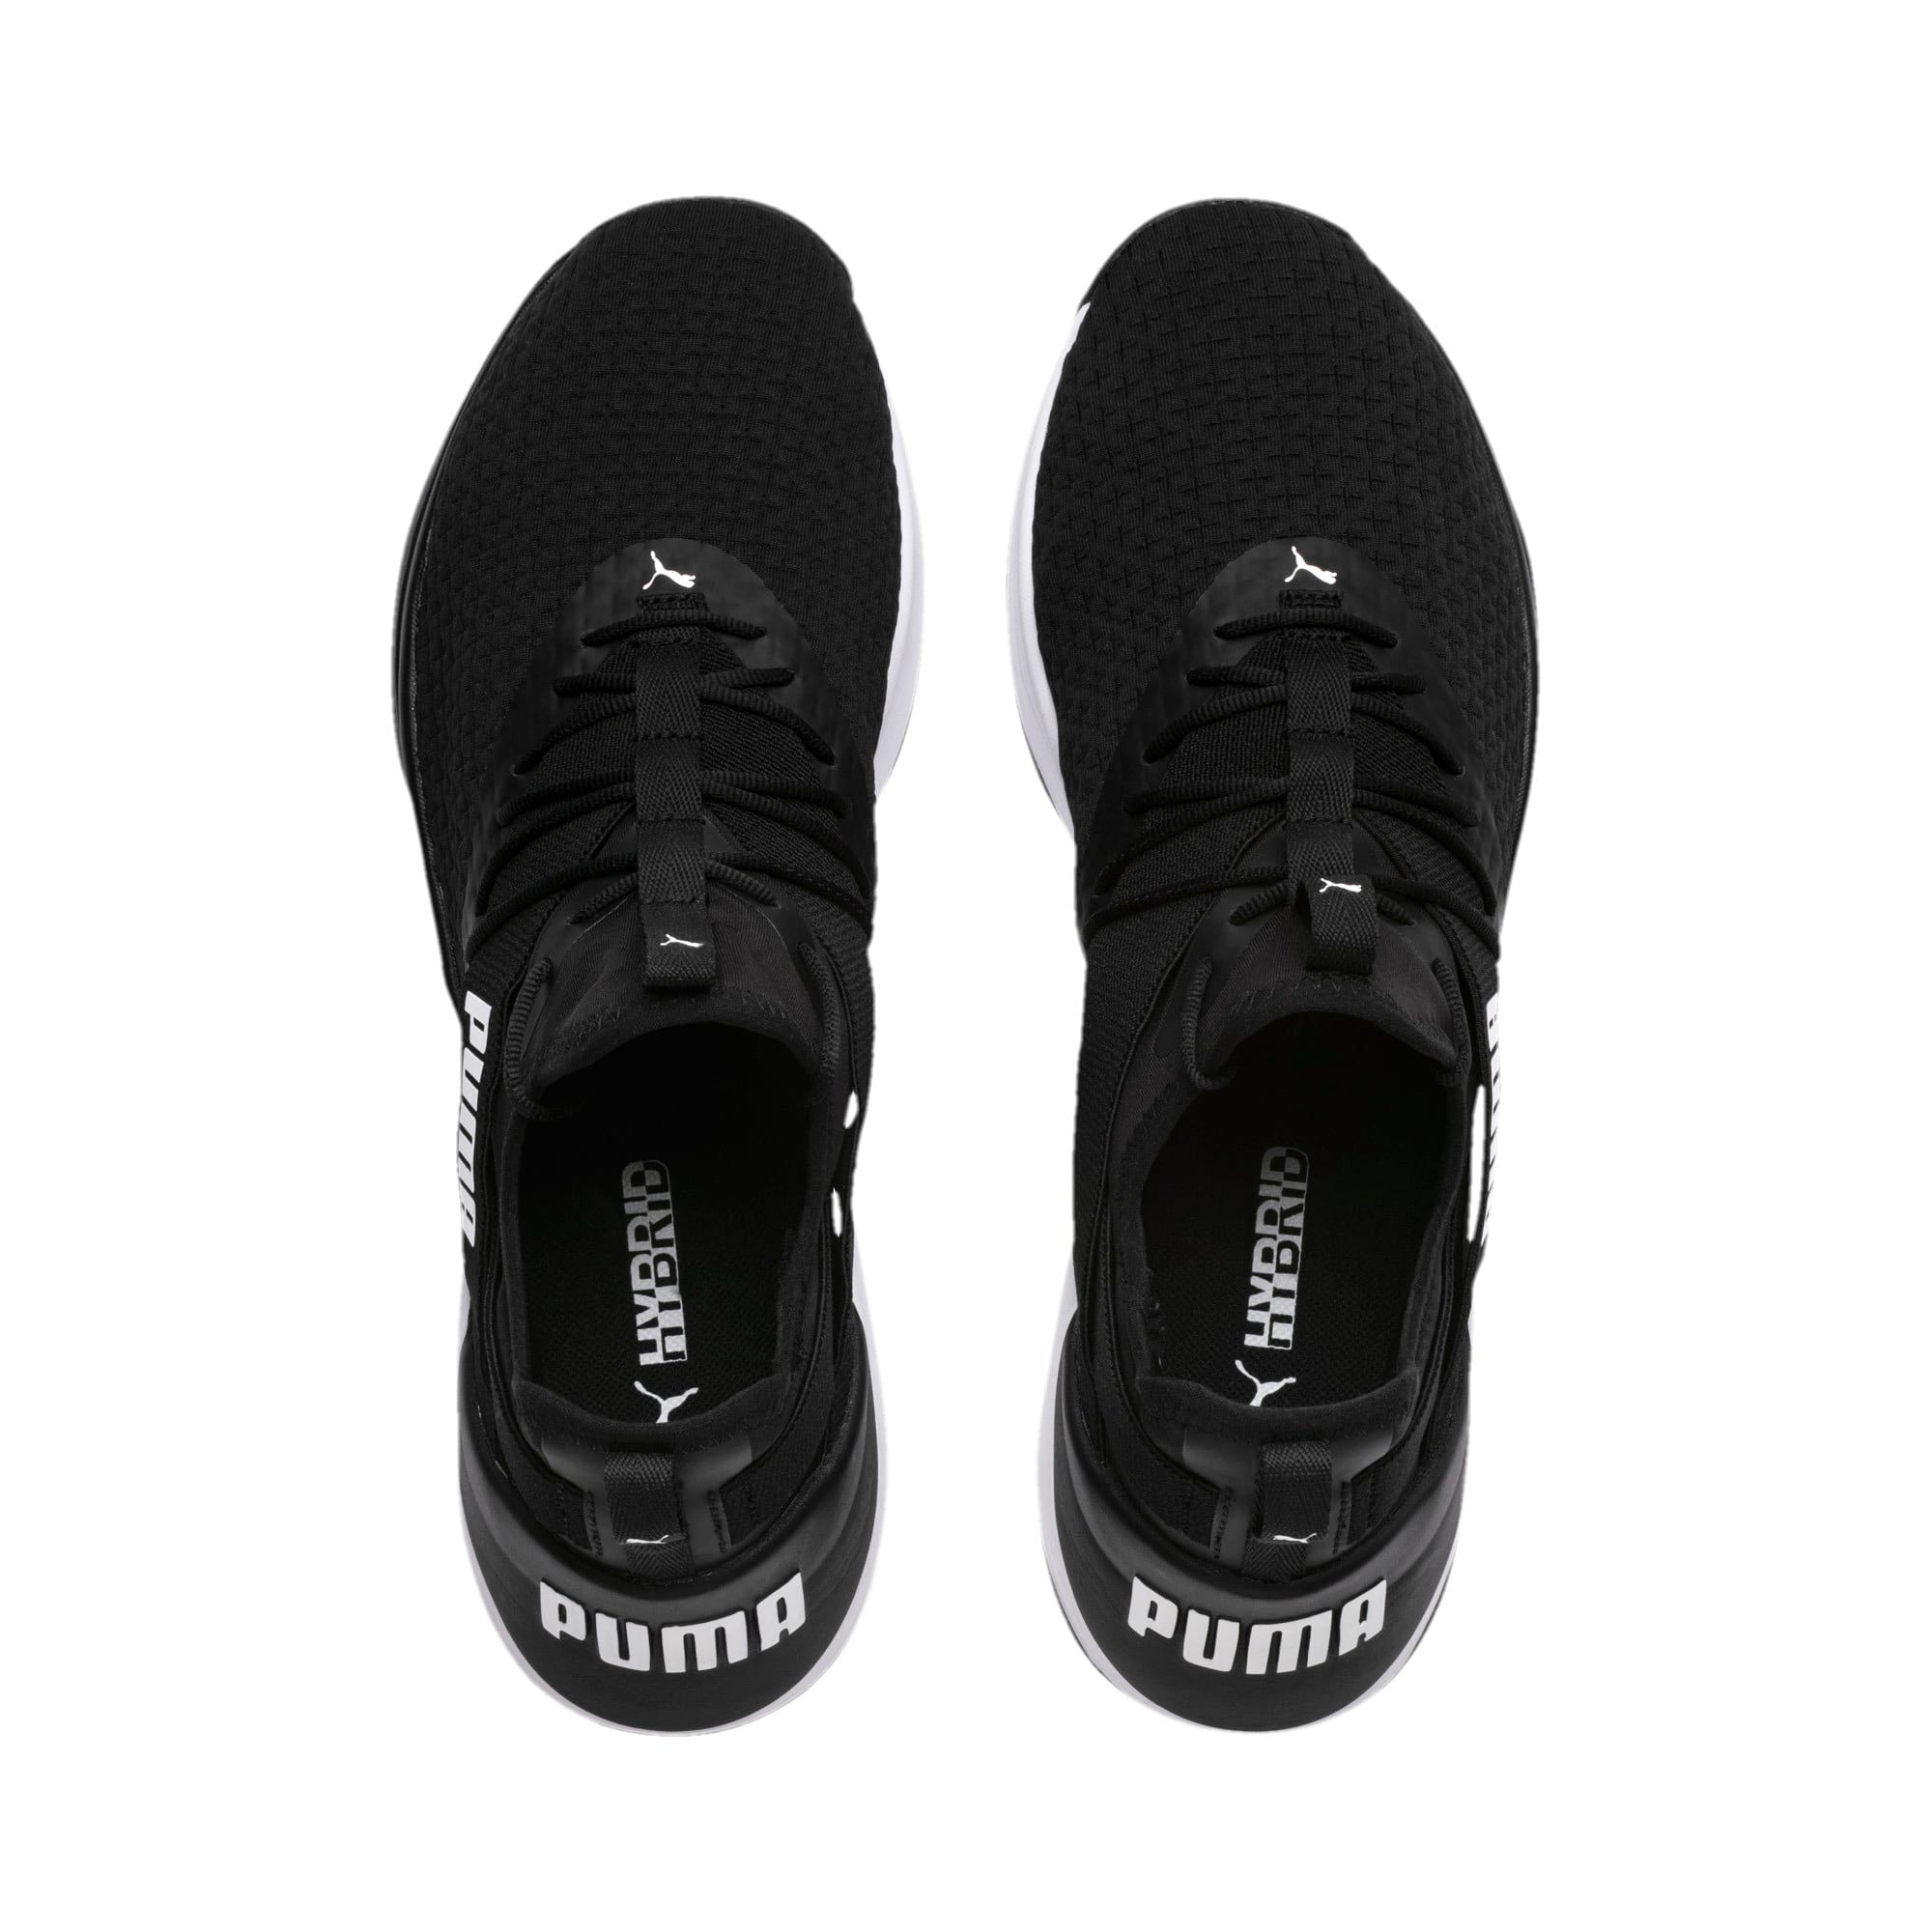 Thumbnail 8 of Jaab XT sneakers voor heren, Puma Black-Puma White, medium